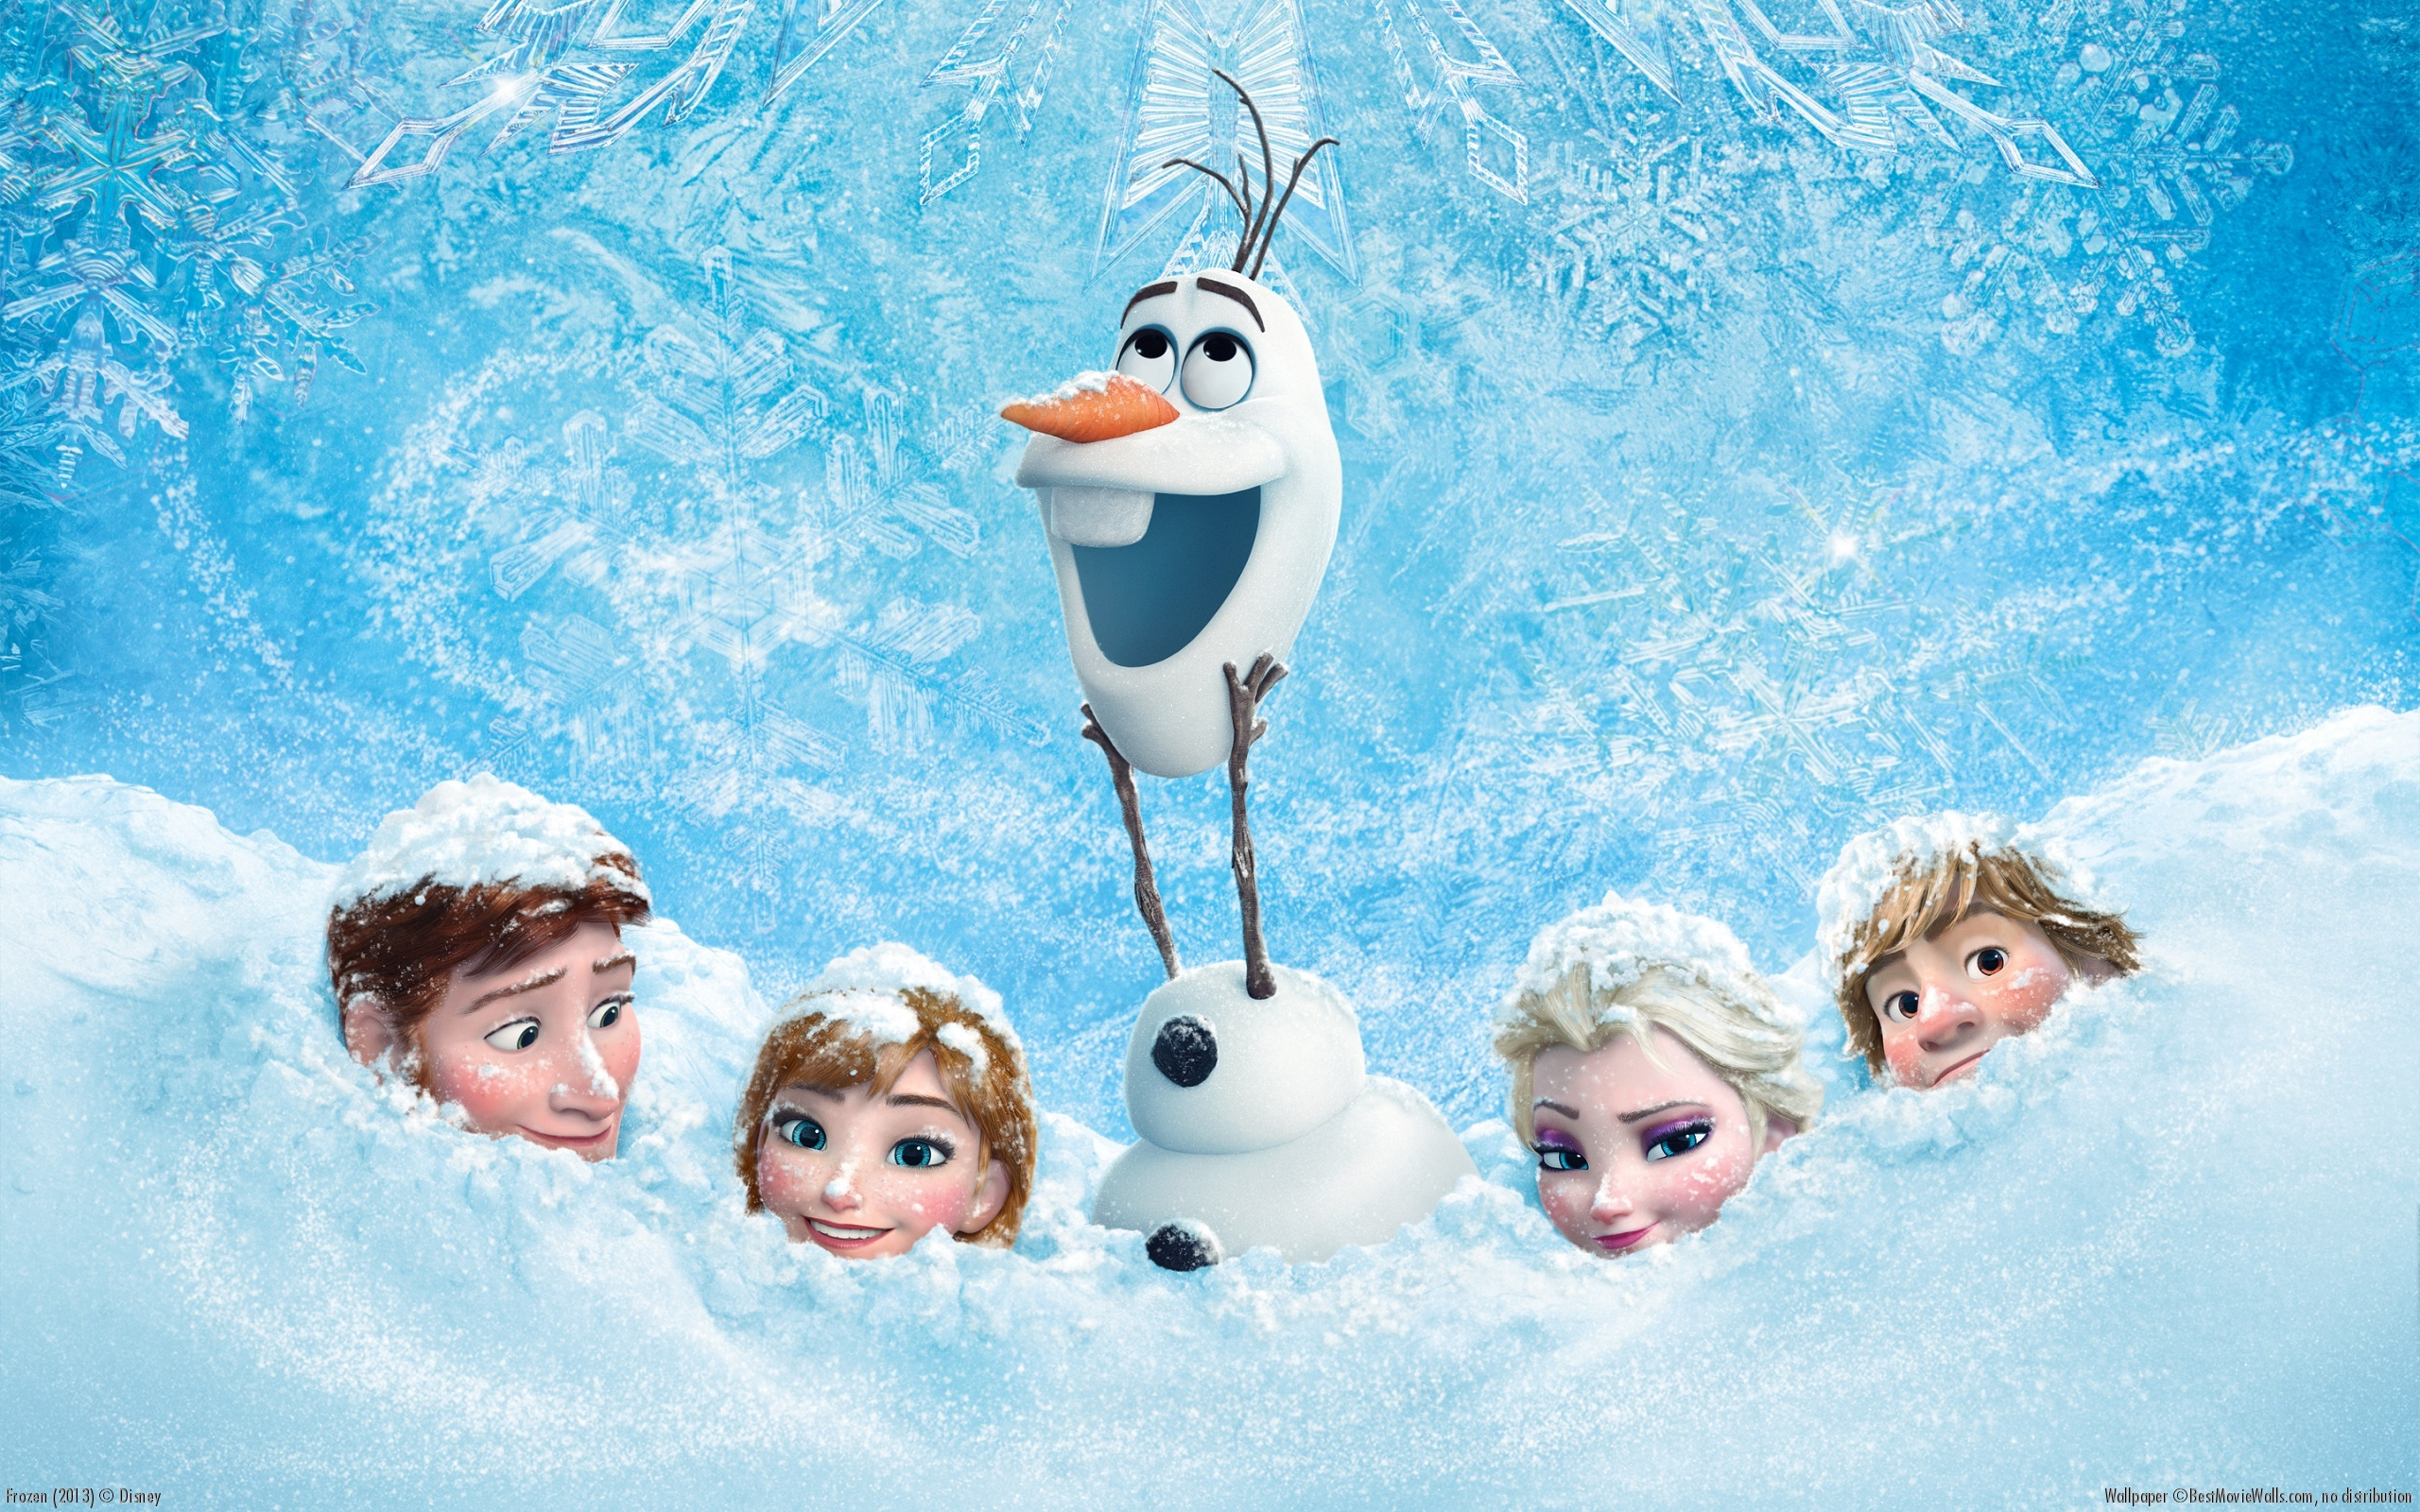 Disney's Frozen is Unbelievably Awesome! Go See It!